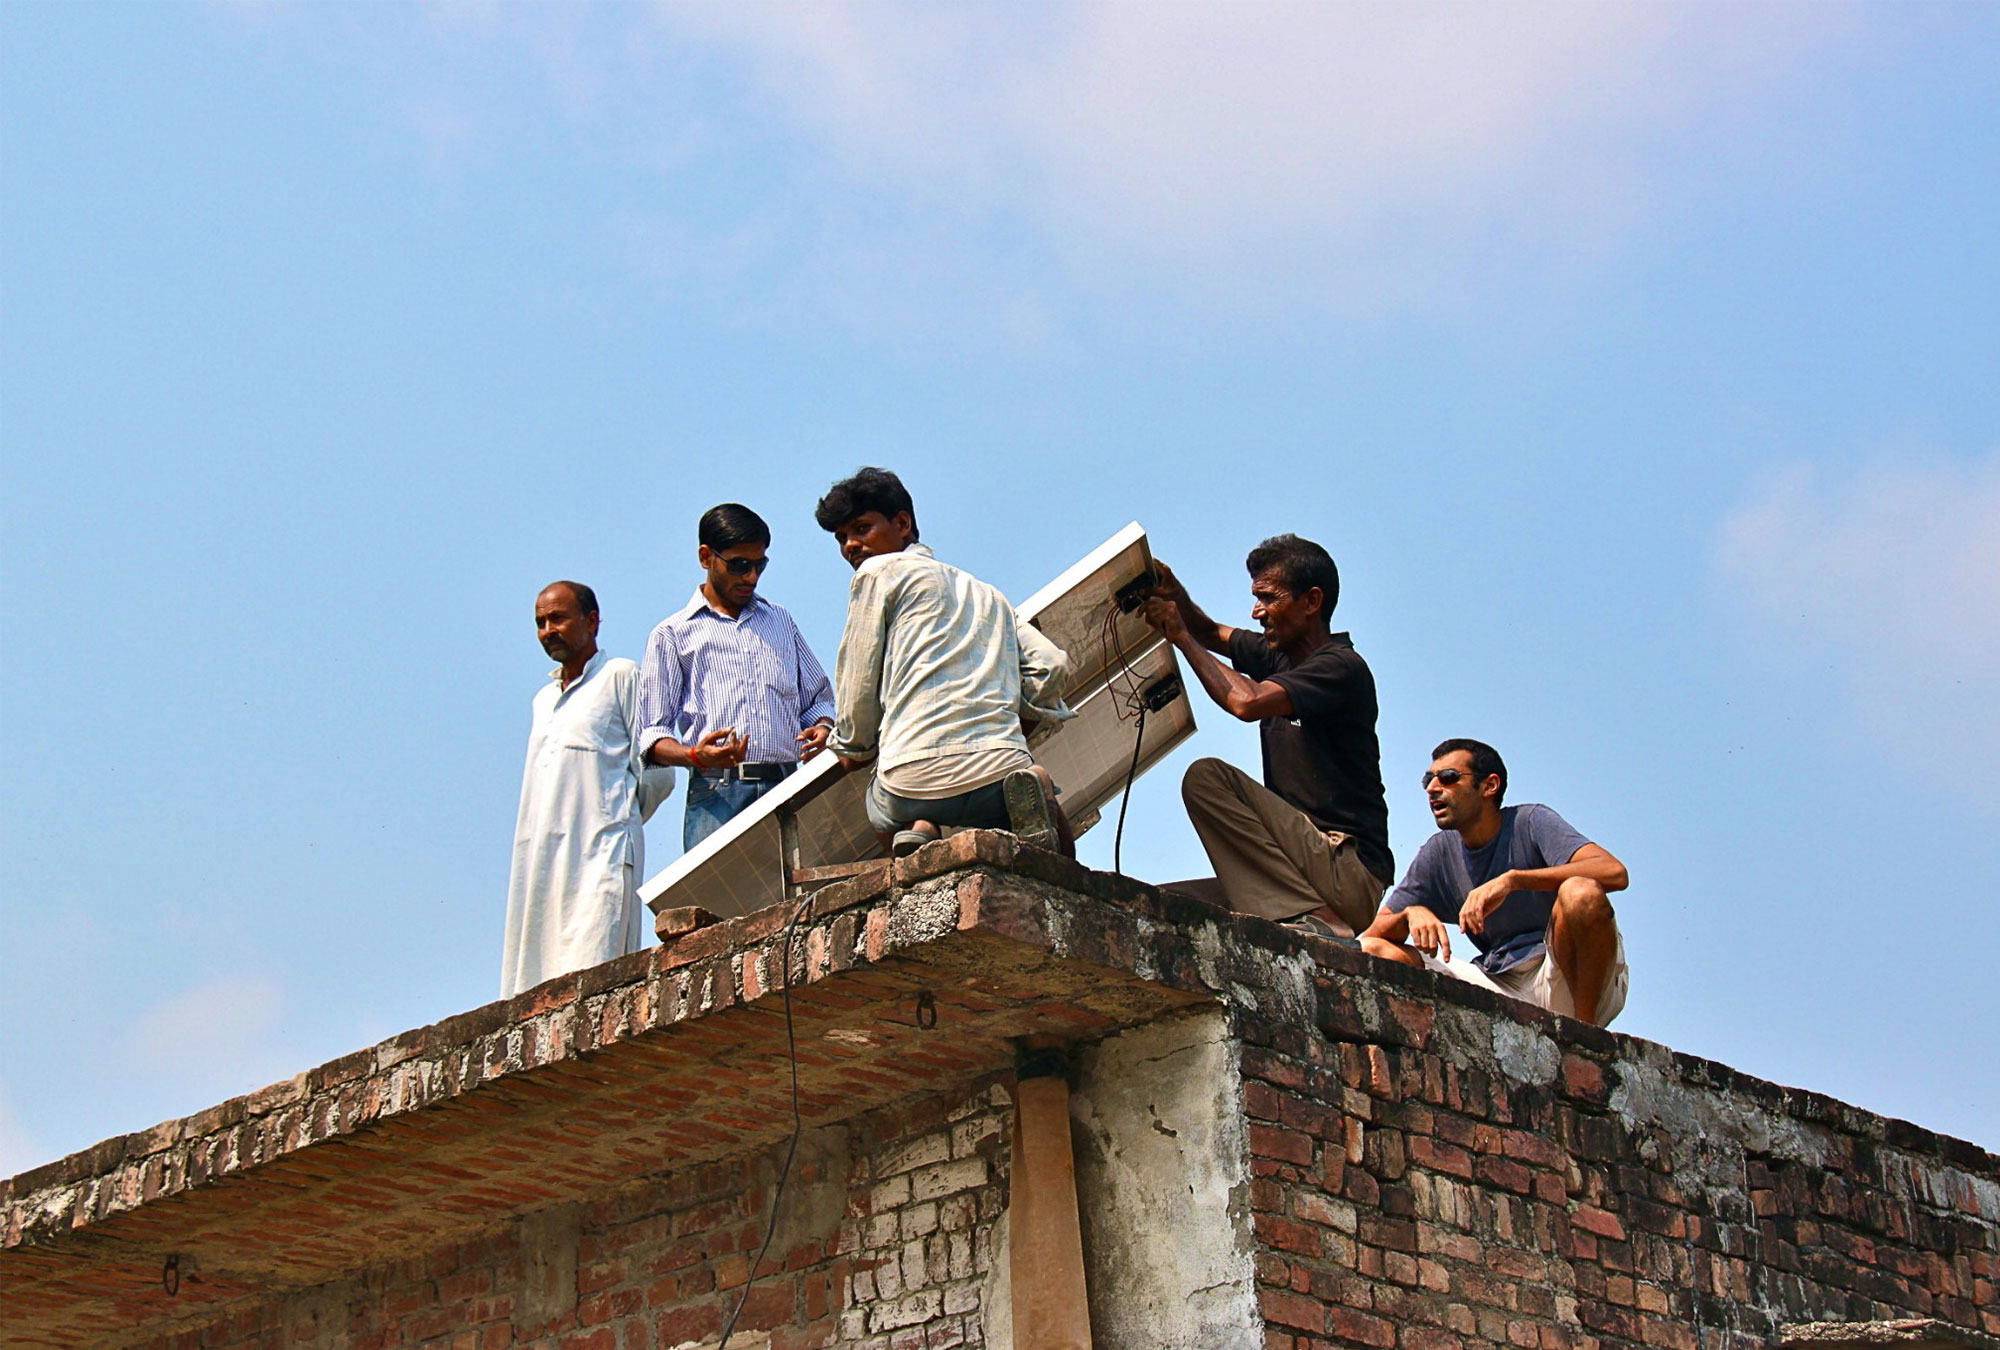 Group of men on the roof of a building installing solar panel